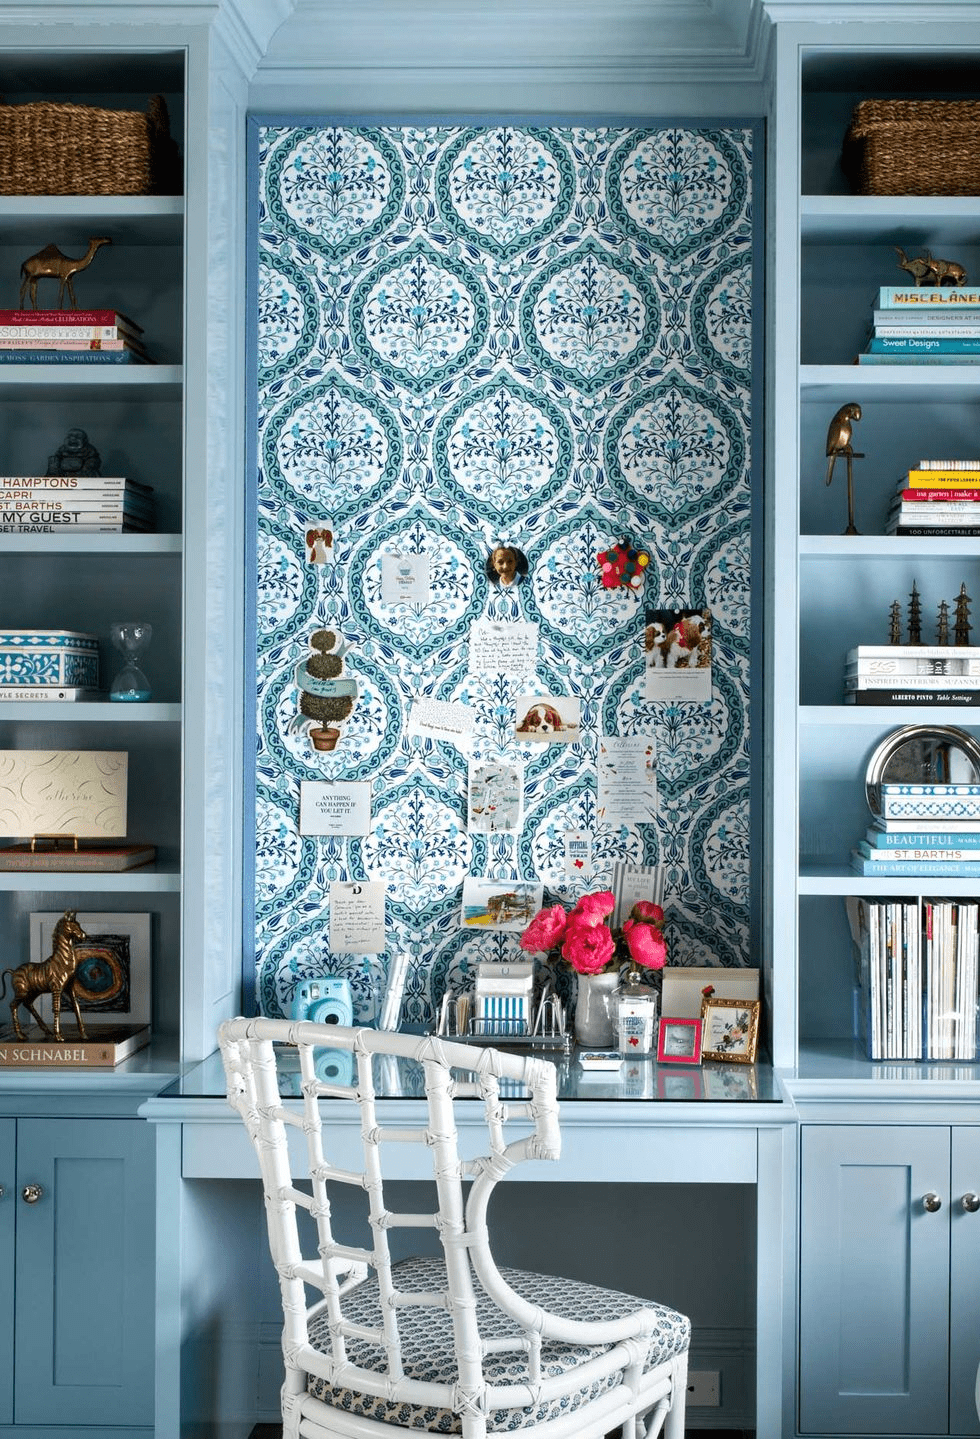 24 Super Colorful Home Office Ideas That Make Working At Home Easier 24 | Award-Winning Interior Designers, Interior Decorators, Kitchen Designers, Bath Designers, Home Renovations, Window Treatments, & Custom Furniture D'KOR HOME by Dee Frazier Interiors | Interior Designer Dallas TX